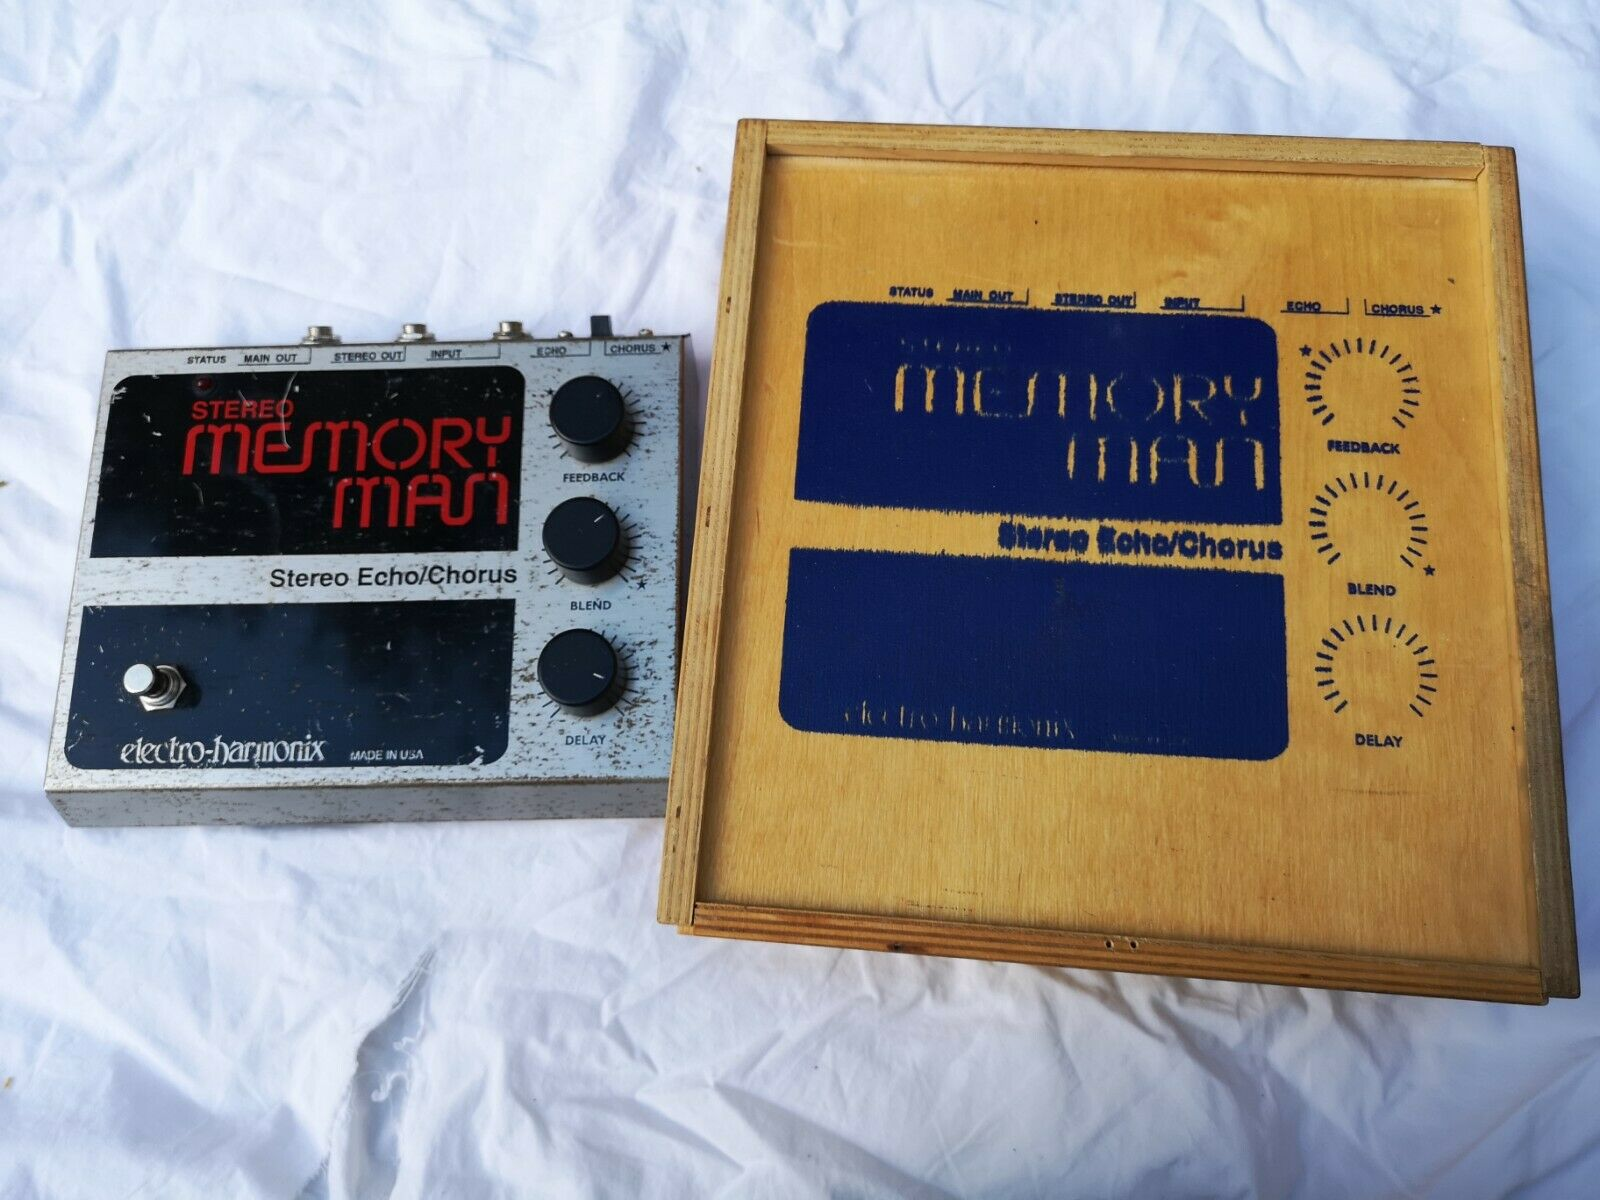 ELECTRO HARMONIX STEREO MEMORY MAN - FREE NEXT DAY DELIVERY IN THE UK